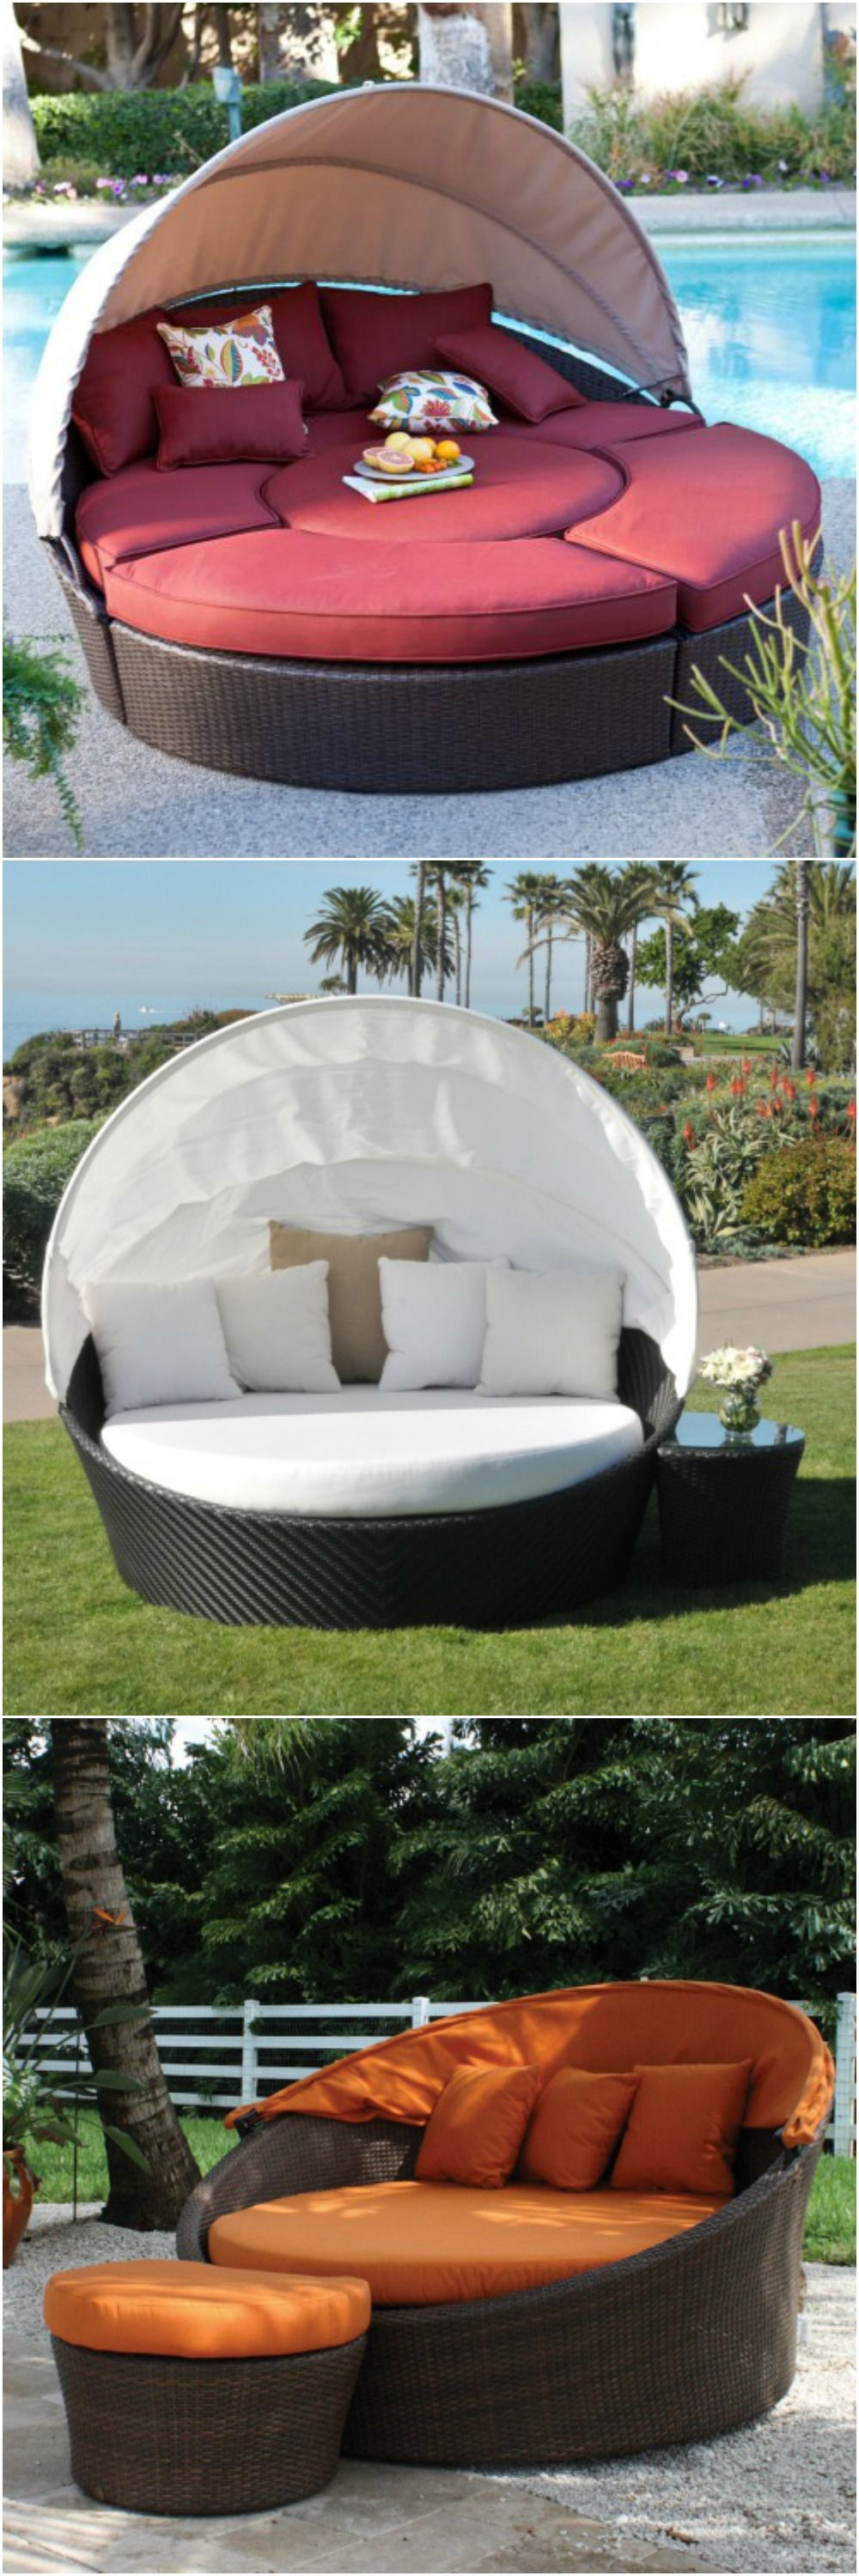 Outdoor Daybeds Outdoor Living Pinterest Outdoor Daybed - Build a crazy grass day bed for napping in the sun